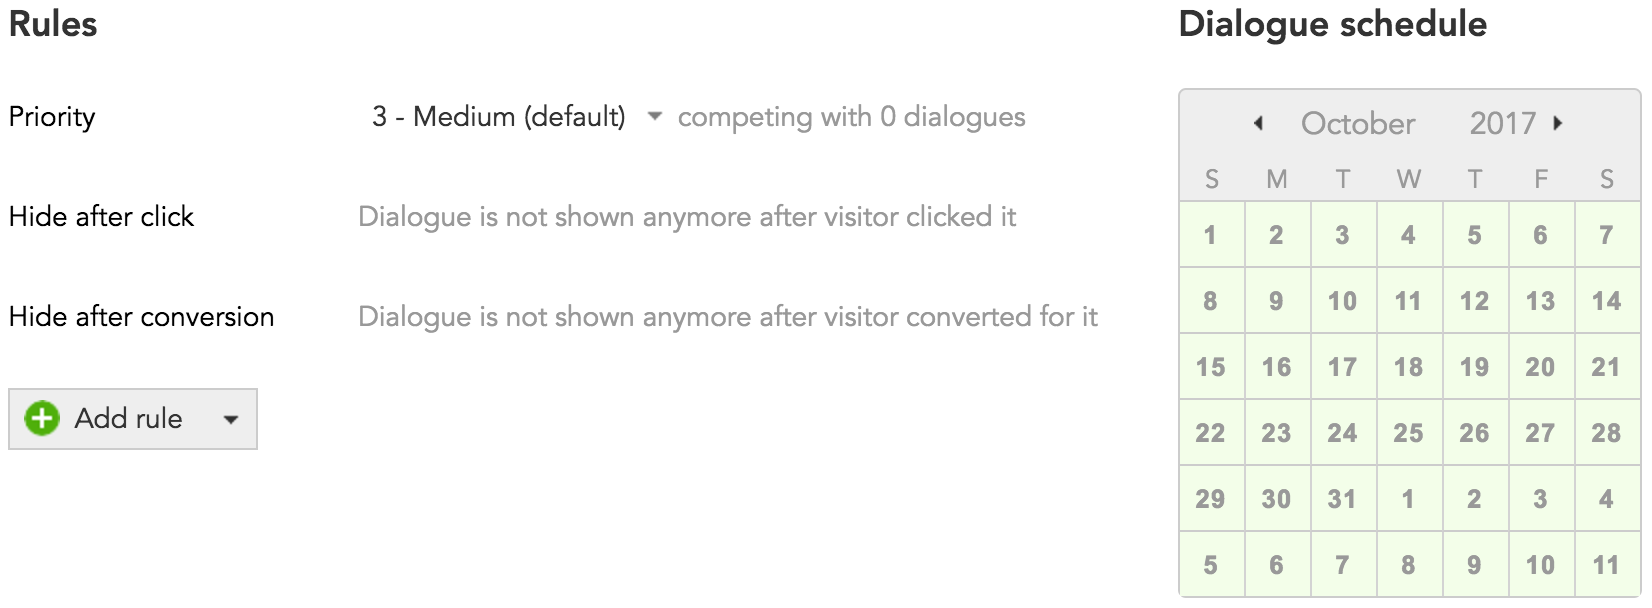 How to hide or show content based on customer conversion in BlueConic dialogues